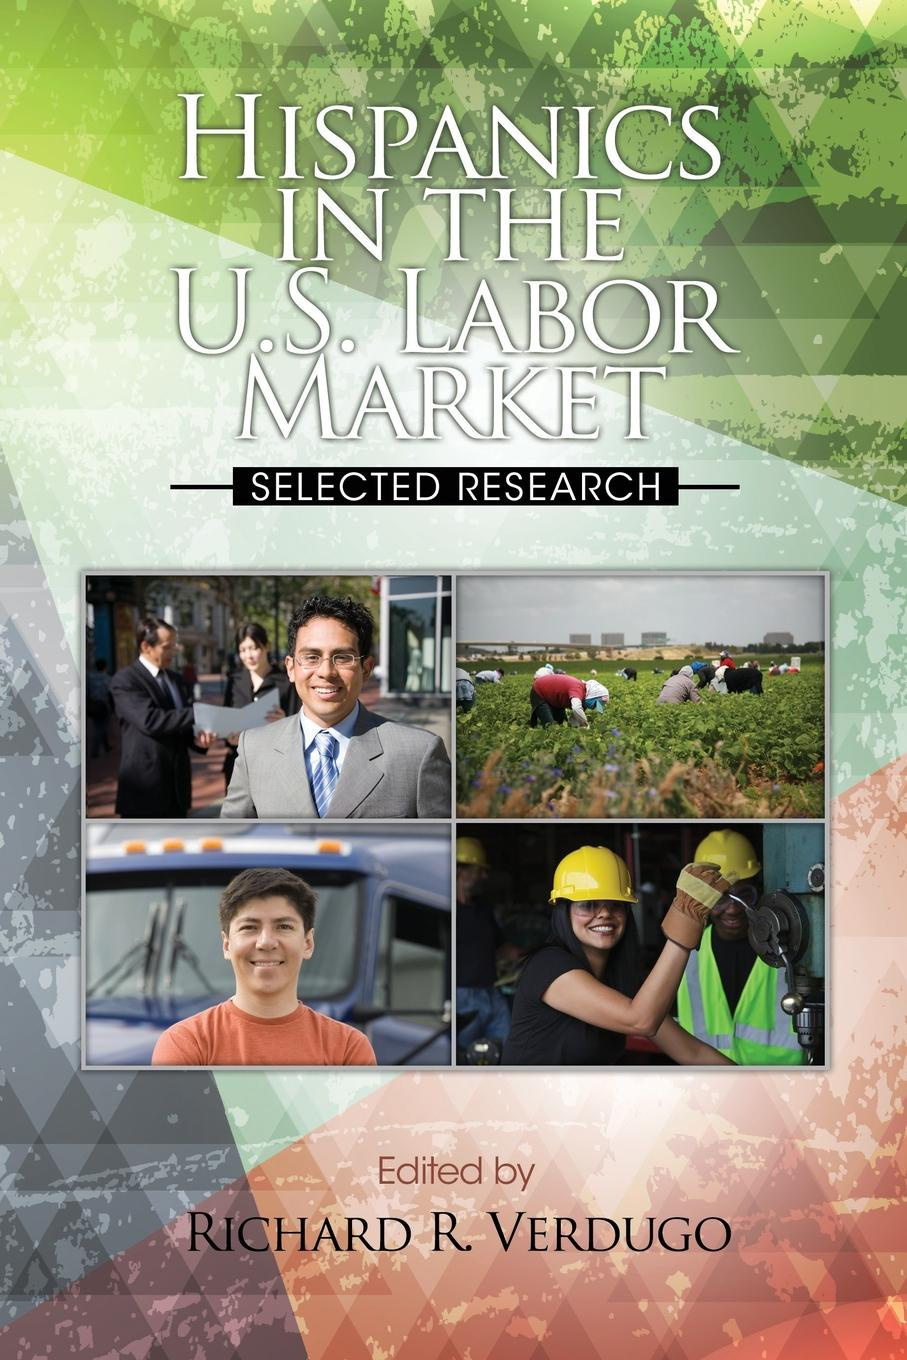 Hispanics in the U.S. Labor Market. Selected Research ethnic population and product choices